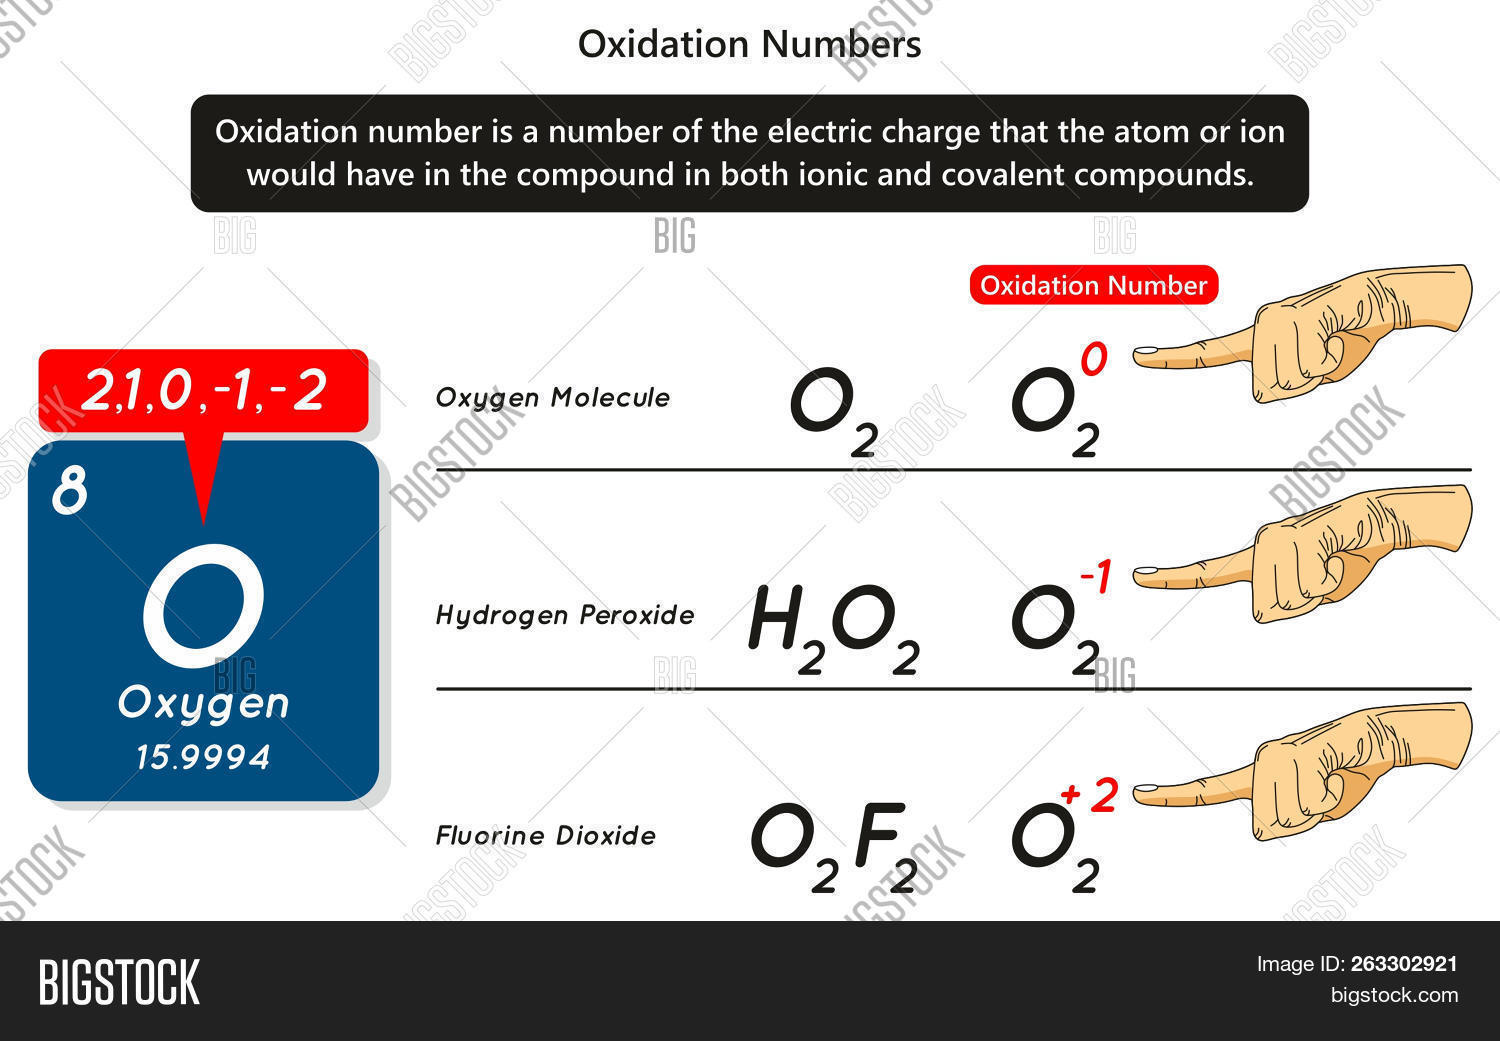 hight resolution of oxidation numbers infographic diagram with example of oxygen atom showing different numbers of electric charge in